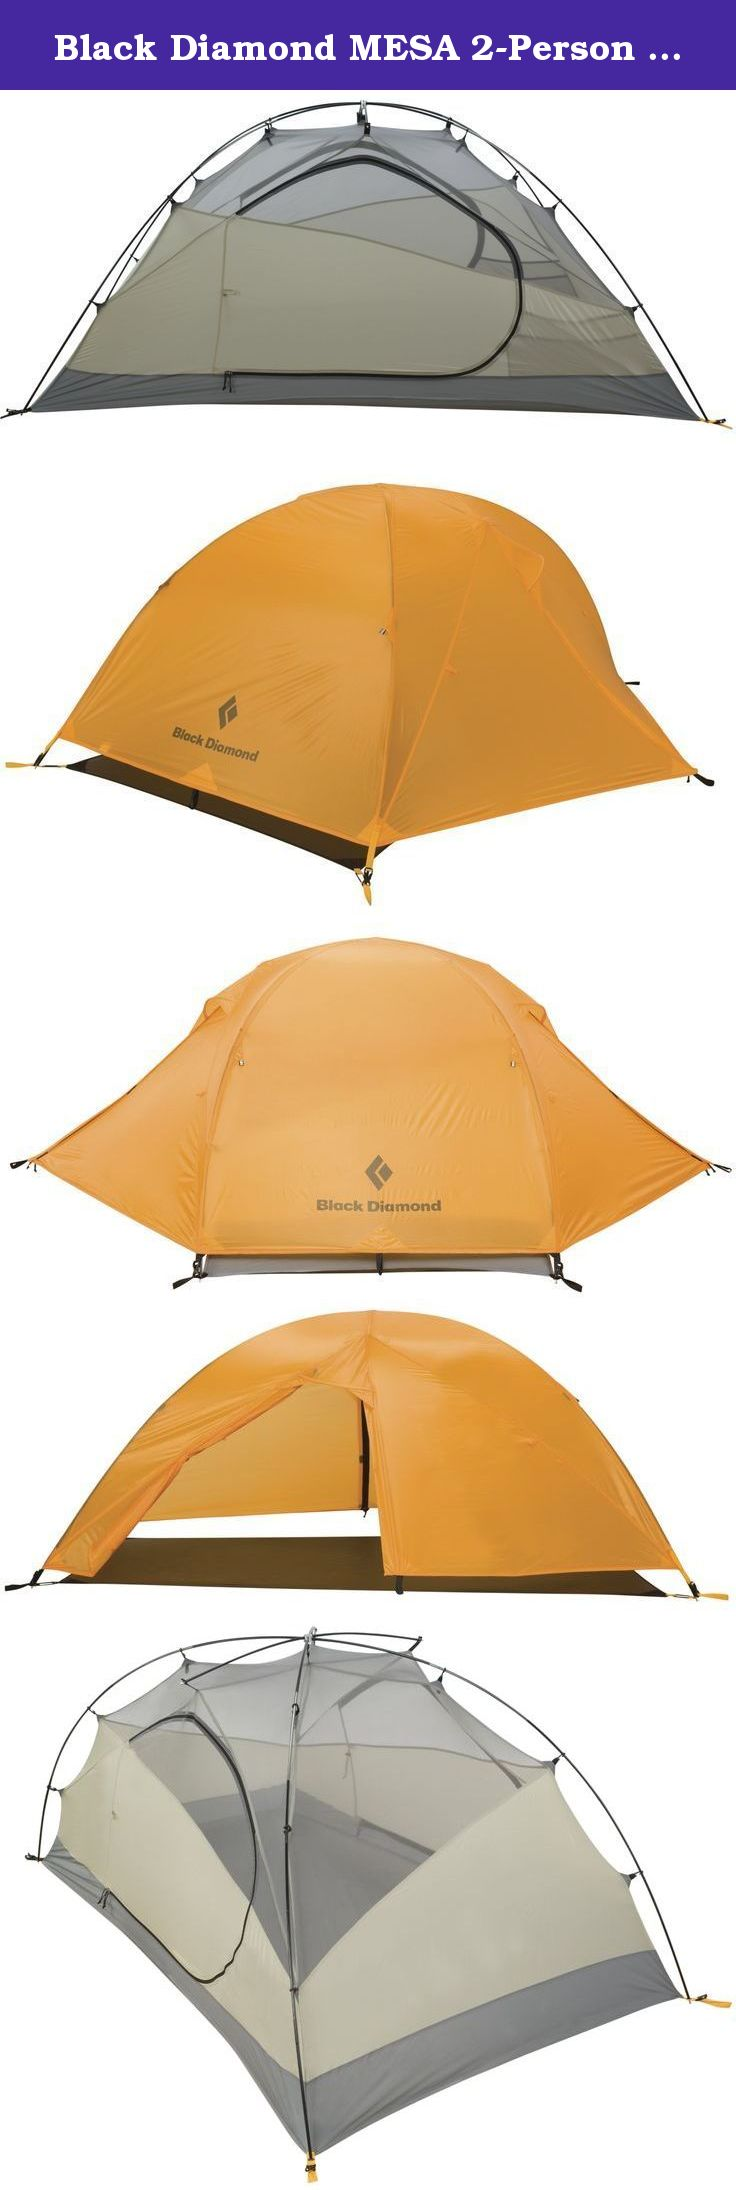 Black Diamond MESA 2-Person Tent Marigold/Gray. Primed for weekend car  sc 1 st  Pinterest & Black Diamond MESA 2-Person Tent Marigold/Gray. Primed for ...